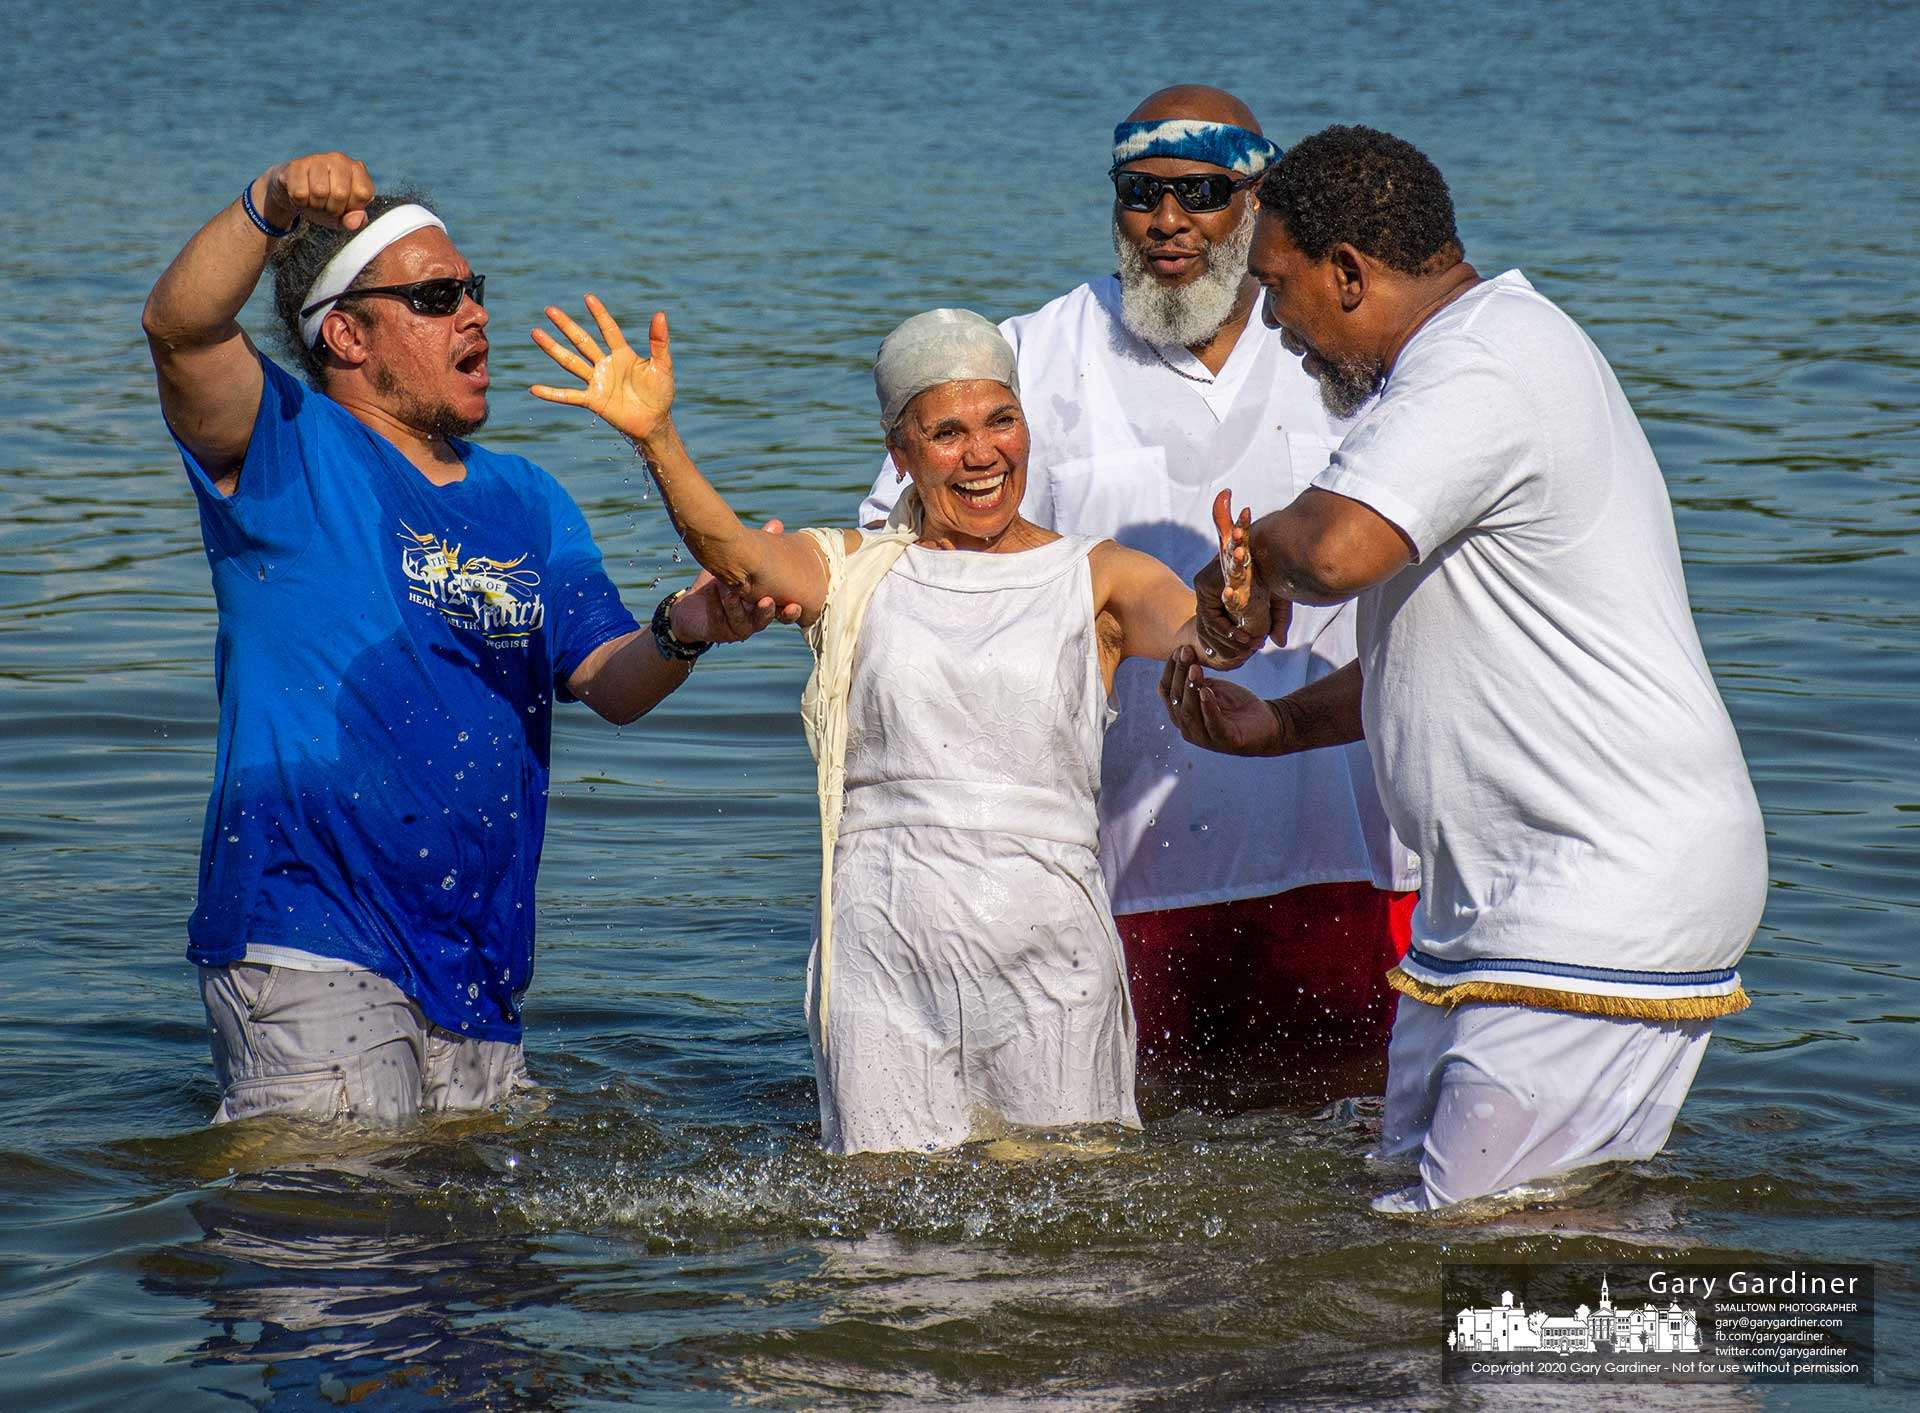 A woman celebrates after her baptism in Hoover Reservoir Saturday by the Gathering of Christ Church in Columbus. My Final Photo for June 6, 2020.